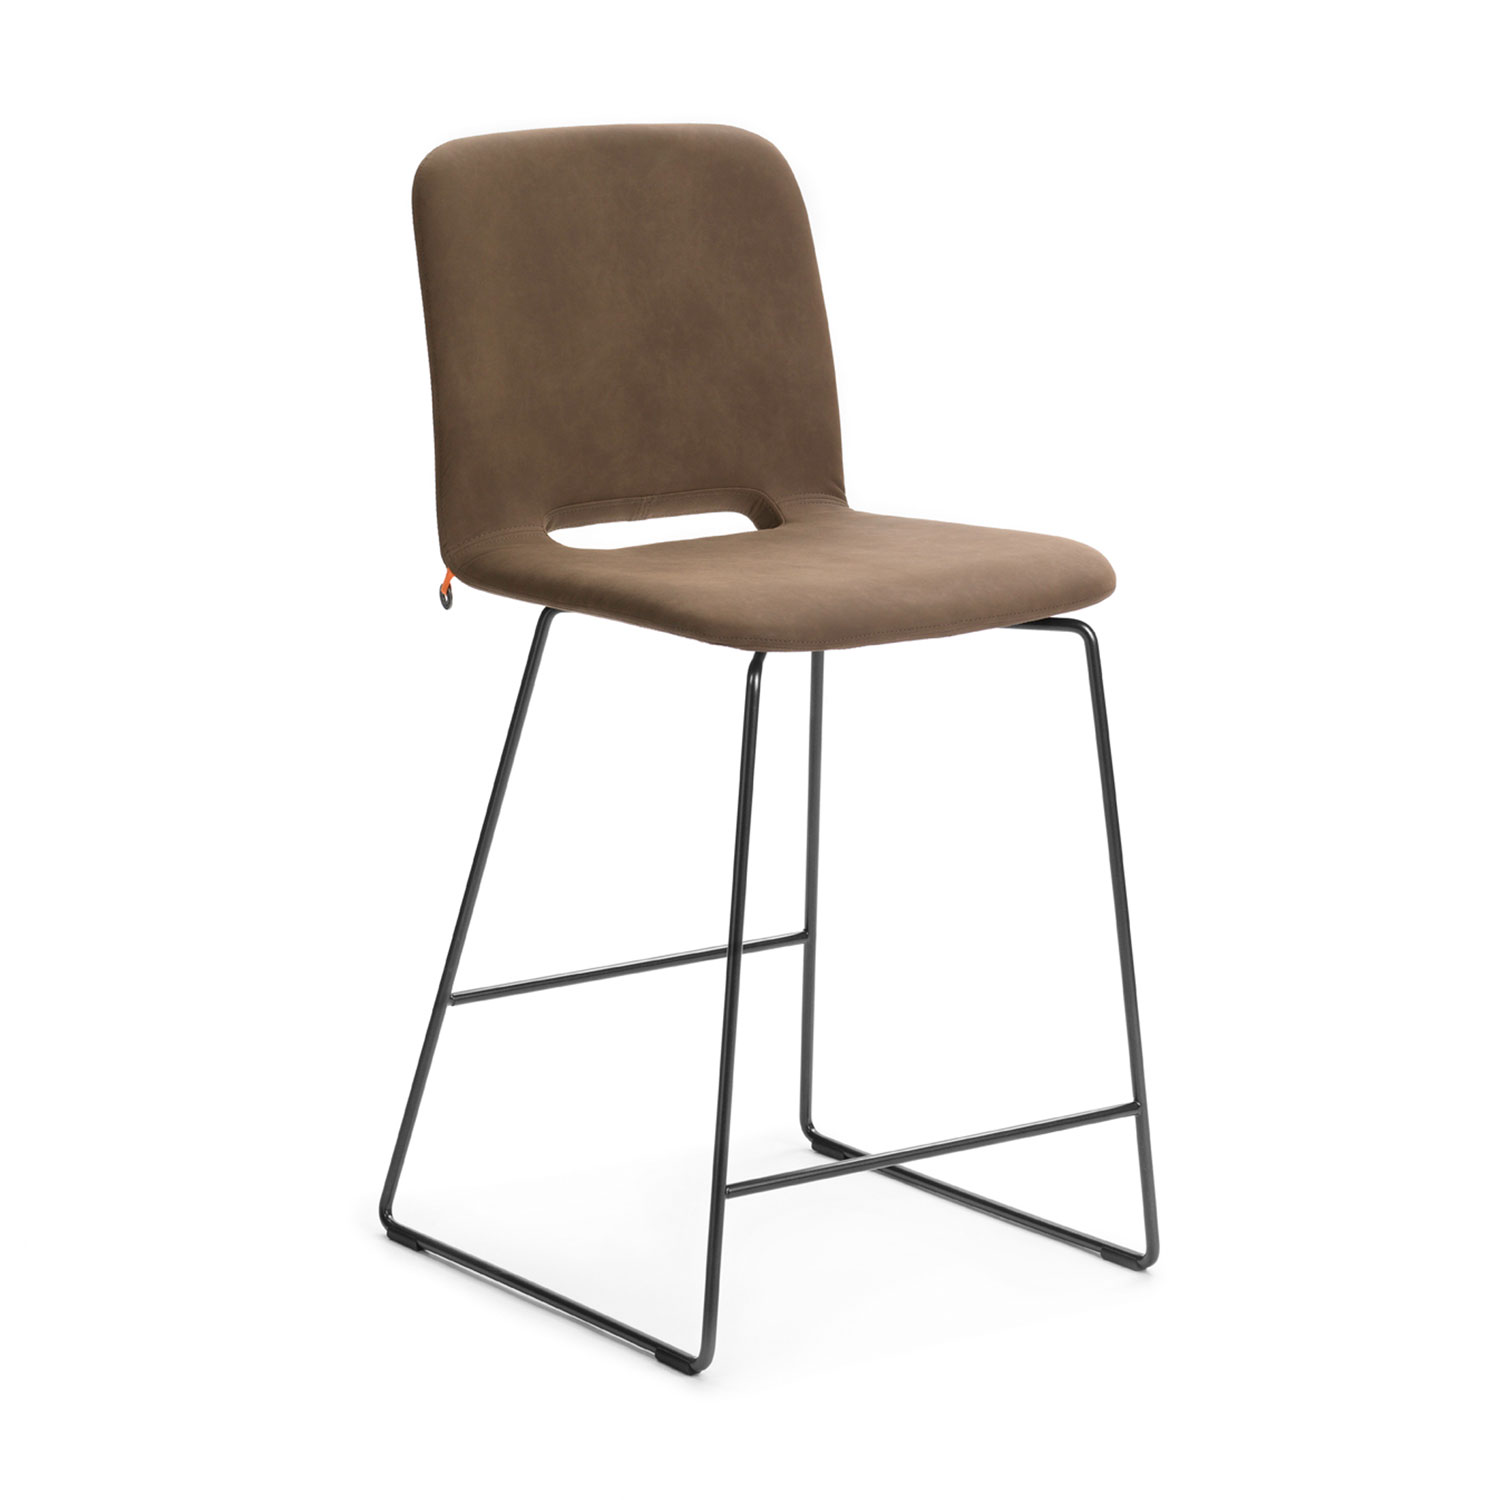 Clapton counter stool H62 - metal frame